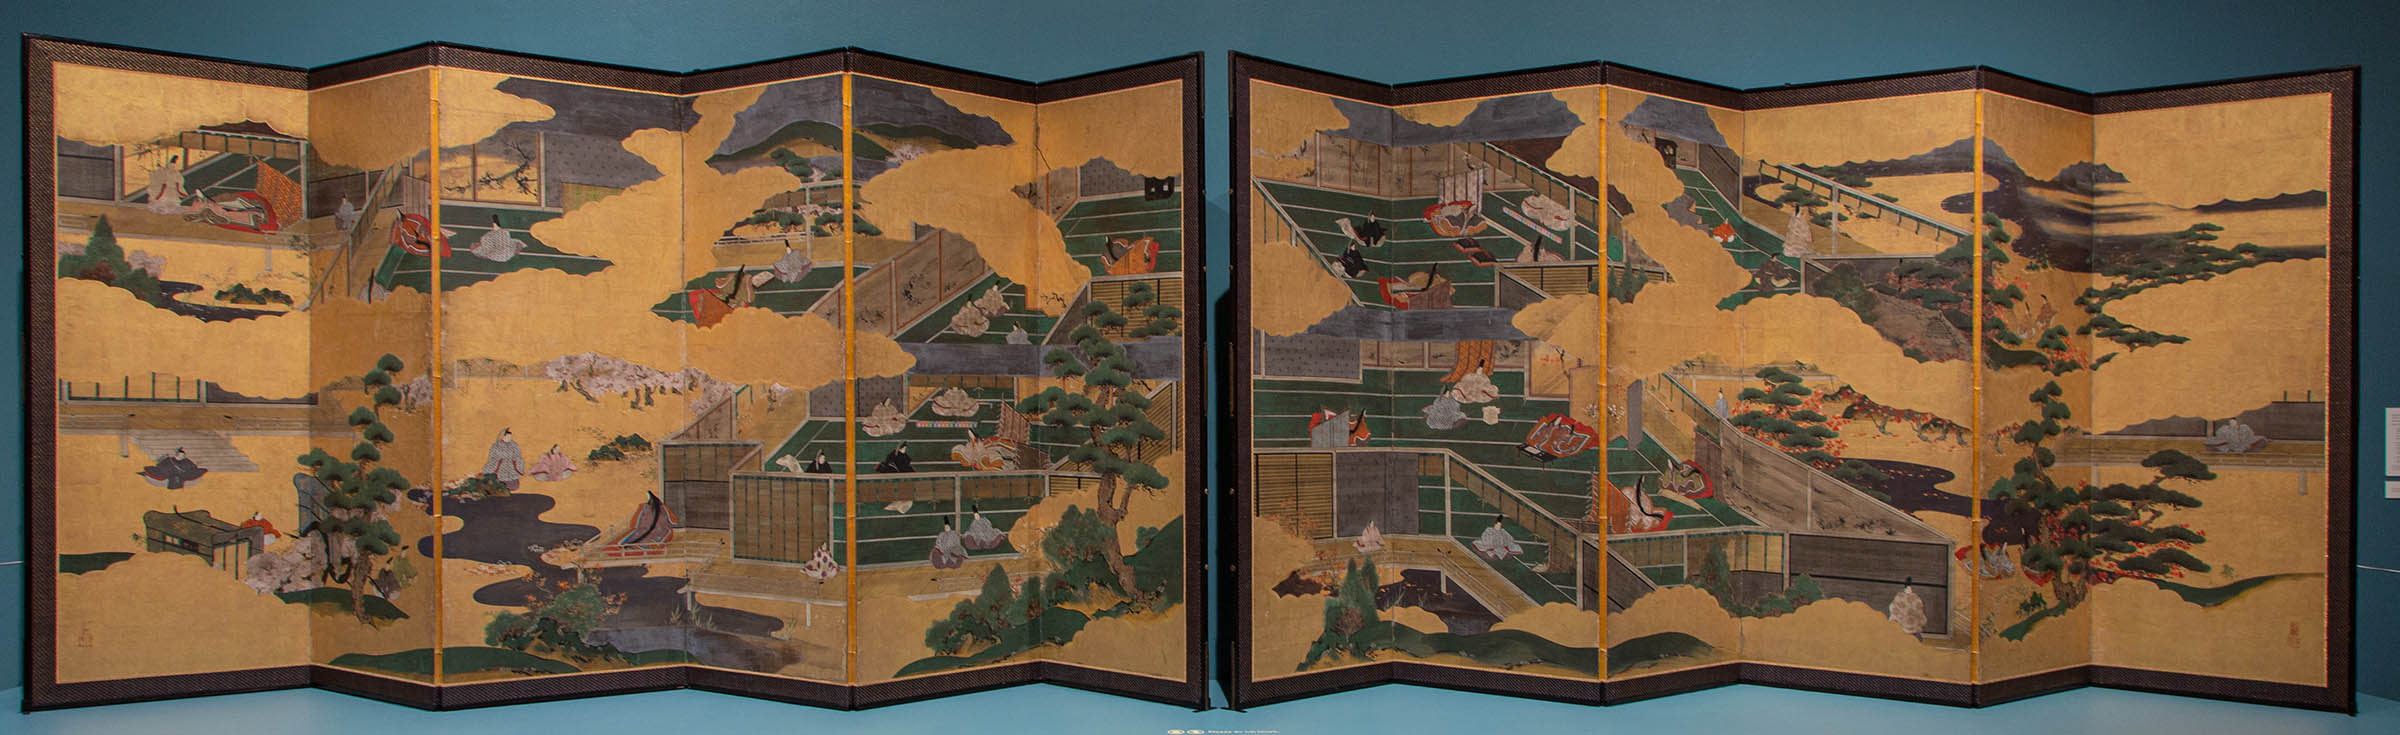 Kaiho Yusho II  Japanese, 1818–69 Scenes from the Tale of Genji, mid-19th century Japanese ink, gouache, paper, wood, silk, and gold leaf